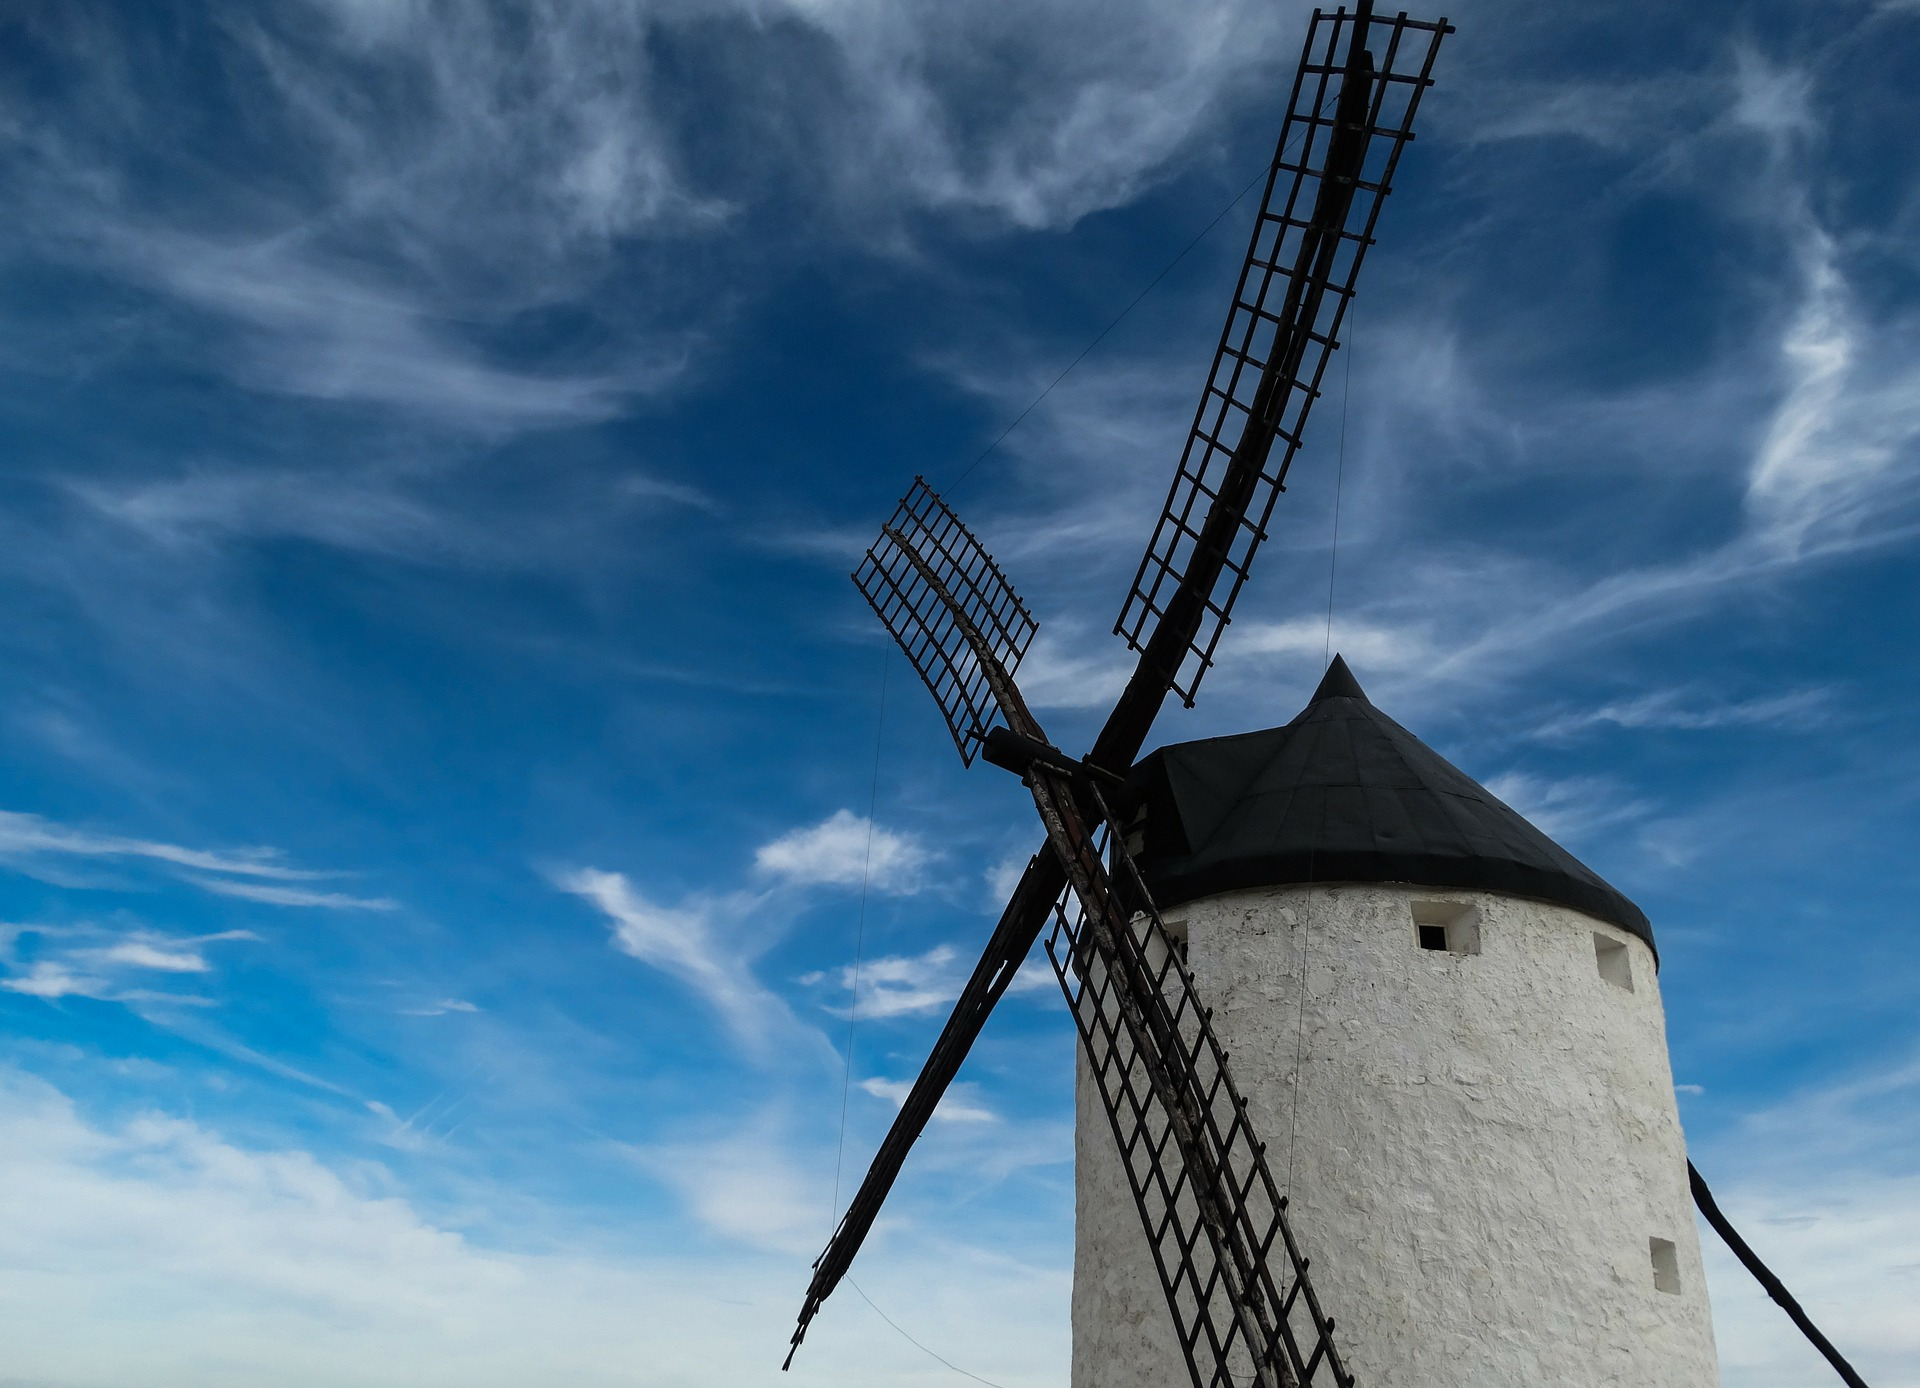 Nature sounds for sleep -a black and white windmill set against a blue sky with wispy clouds